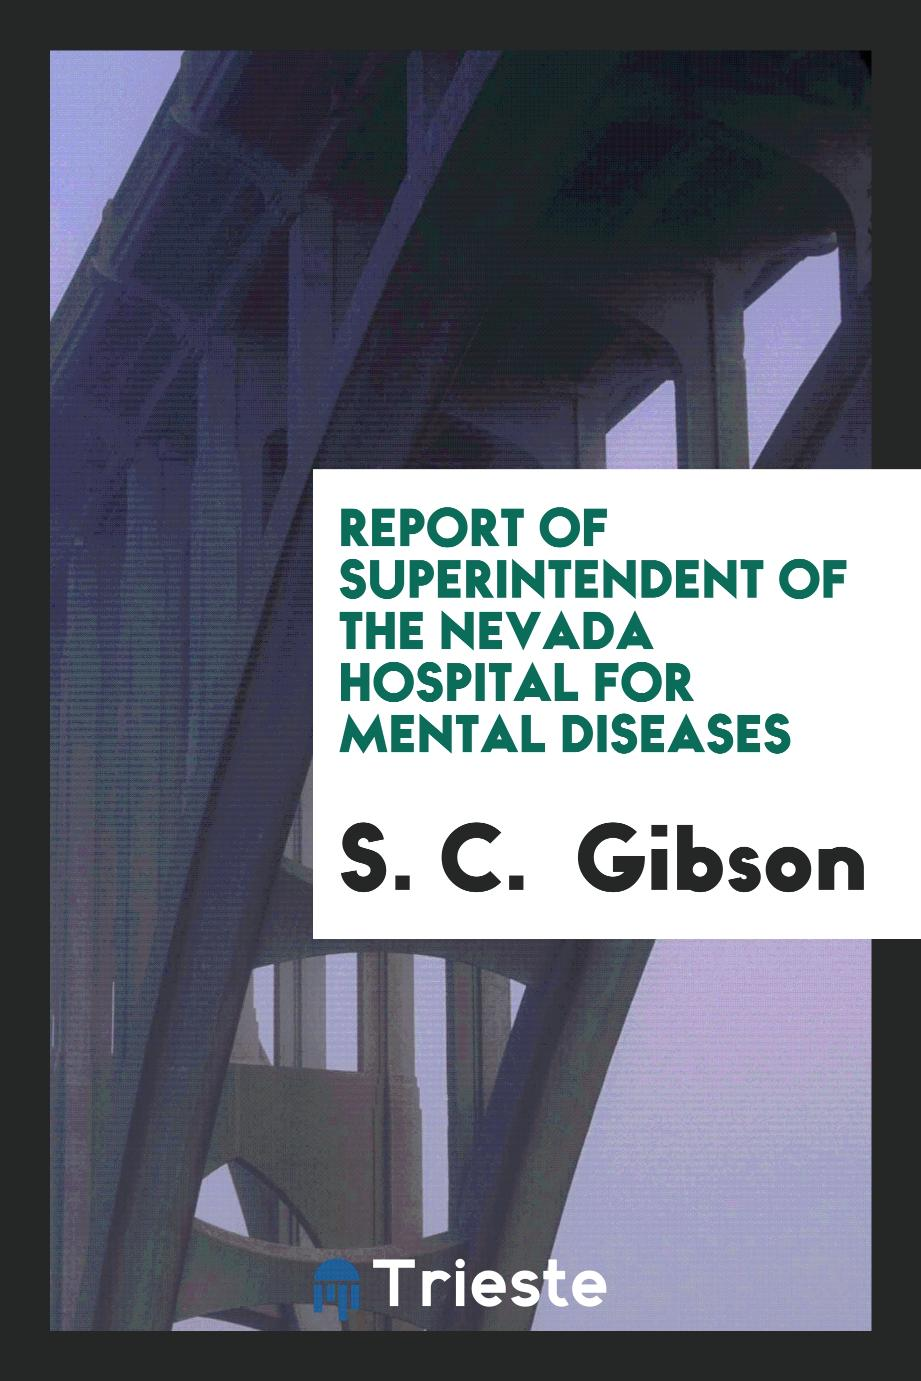 Report of superintendent of the Nevada Hospital for Mental Diseases